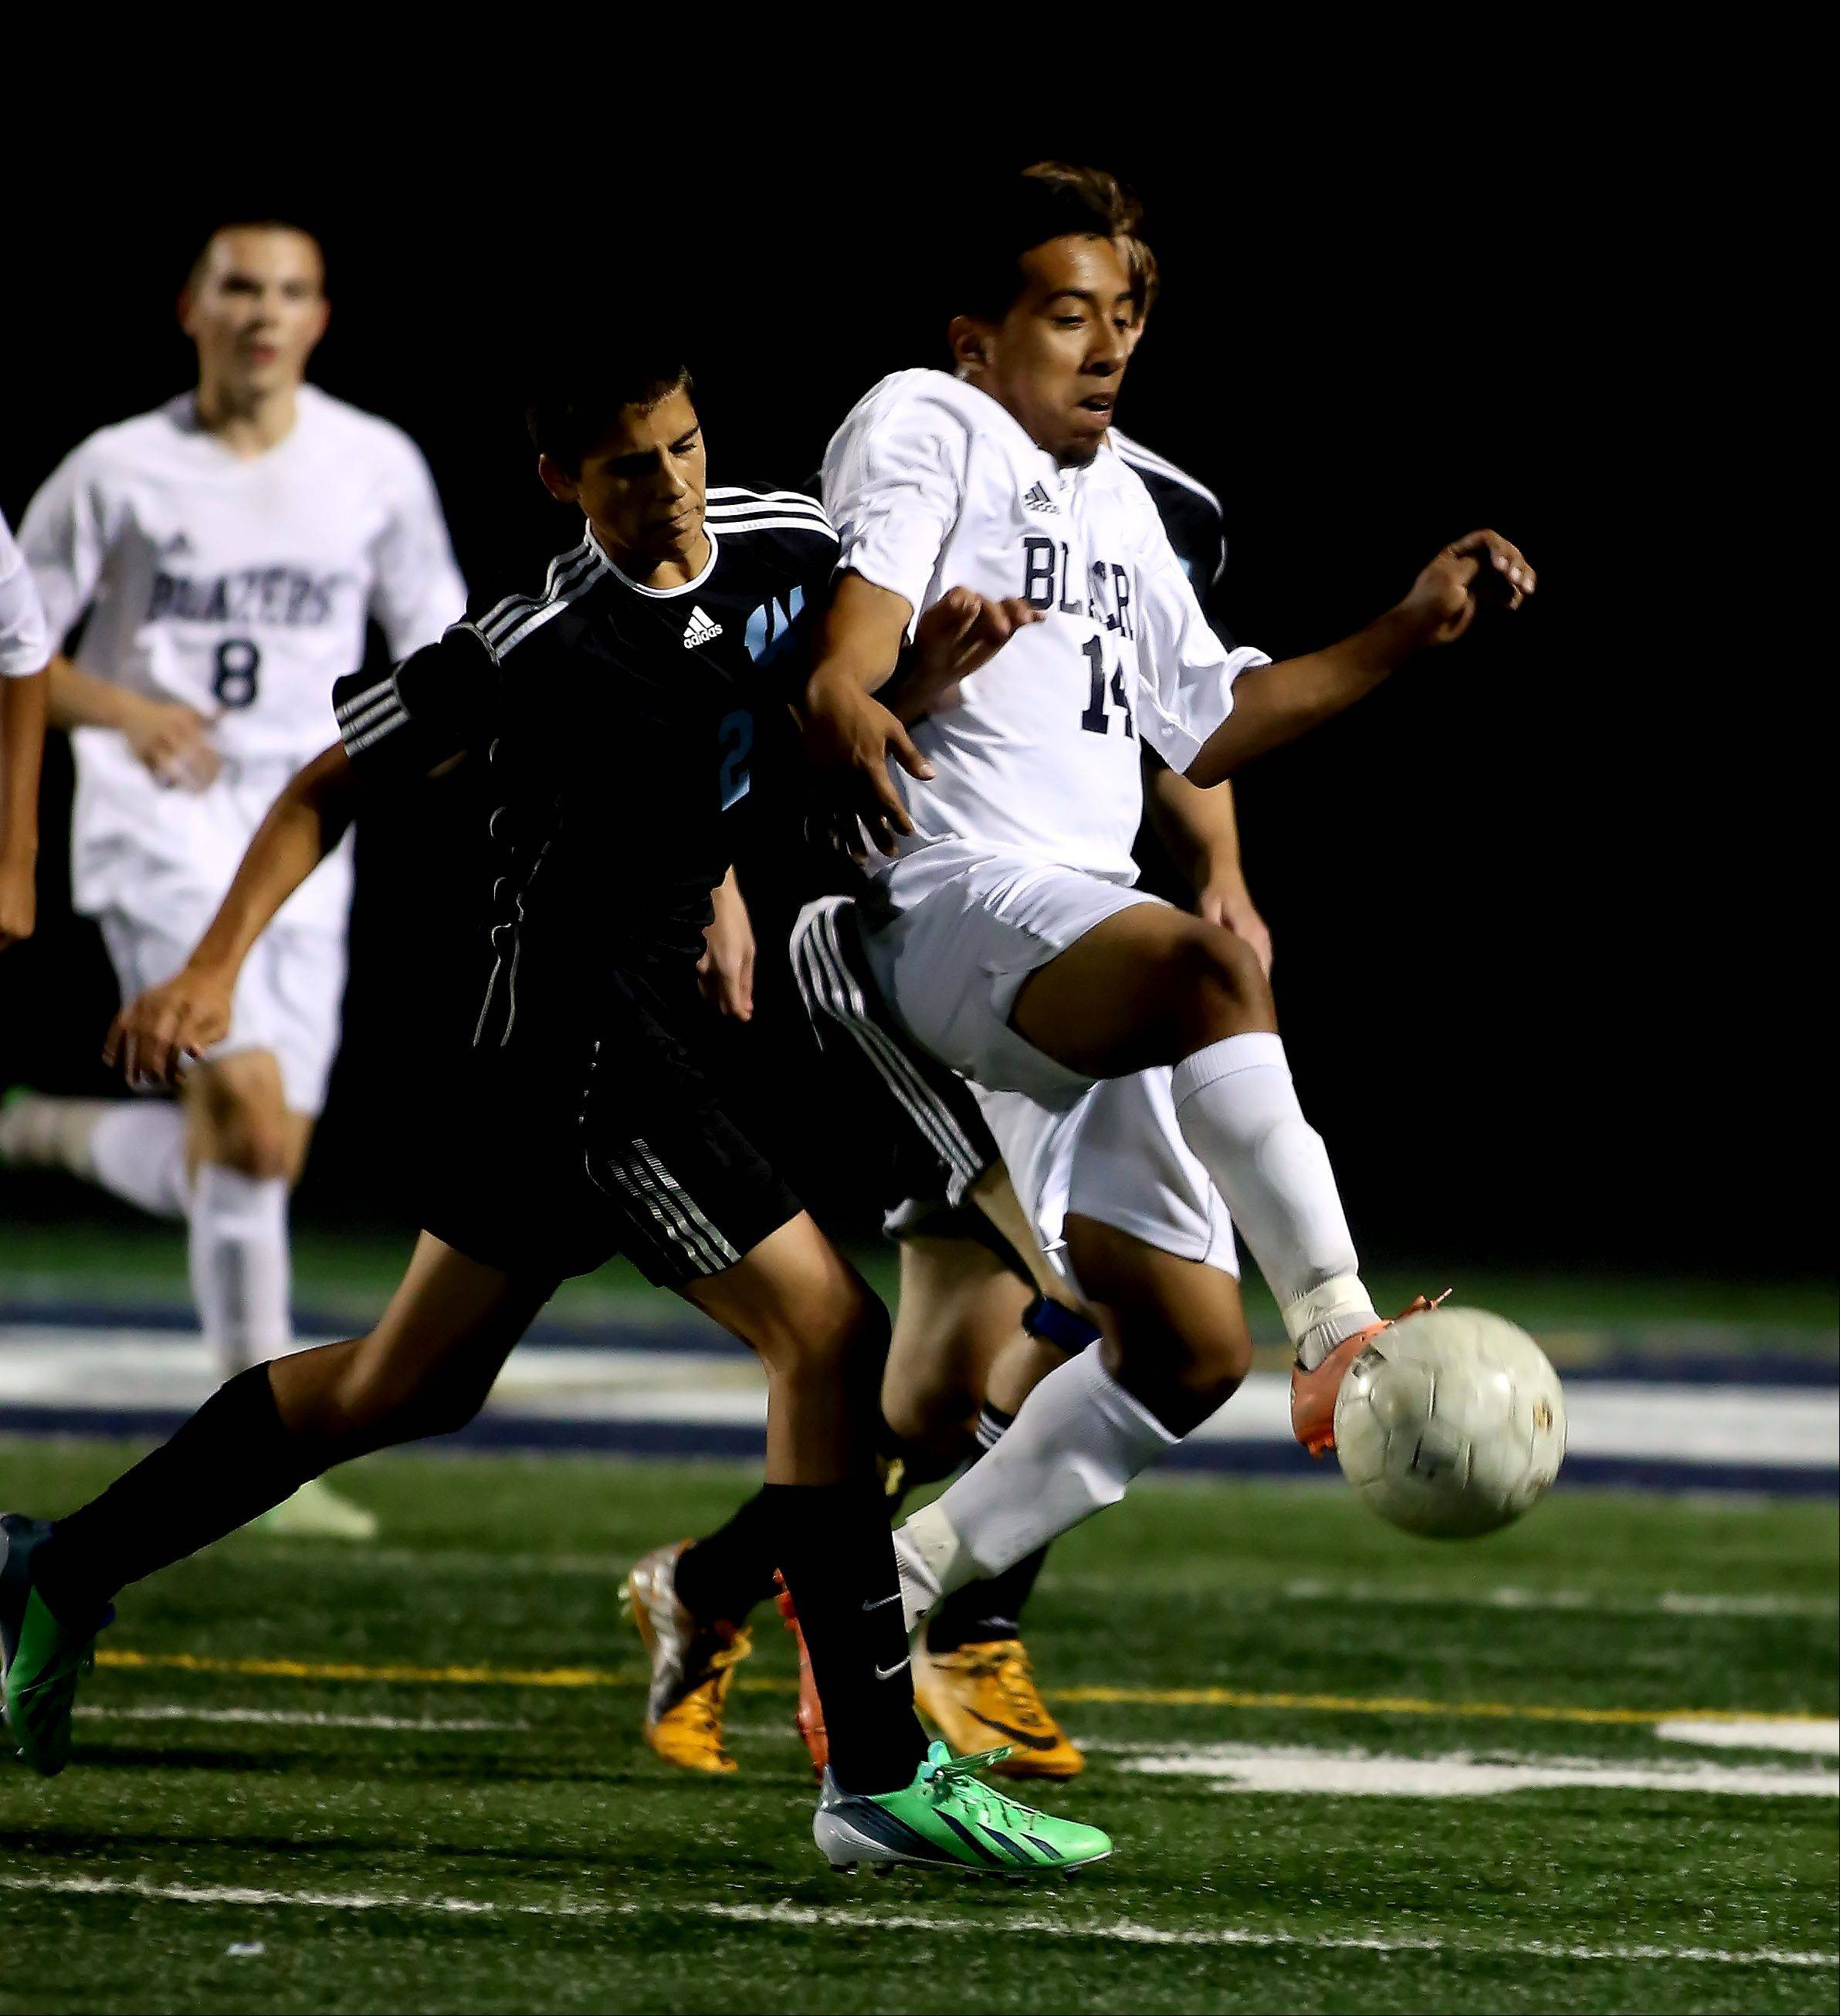 Juan Amezquita of Addison Trail, right, takes control of the ball from Aaron Johnson, left, of Willowbrook in boys soccer action on Tuesday in Addison.